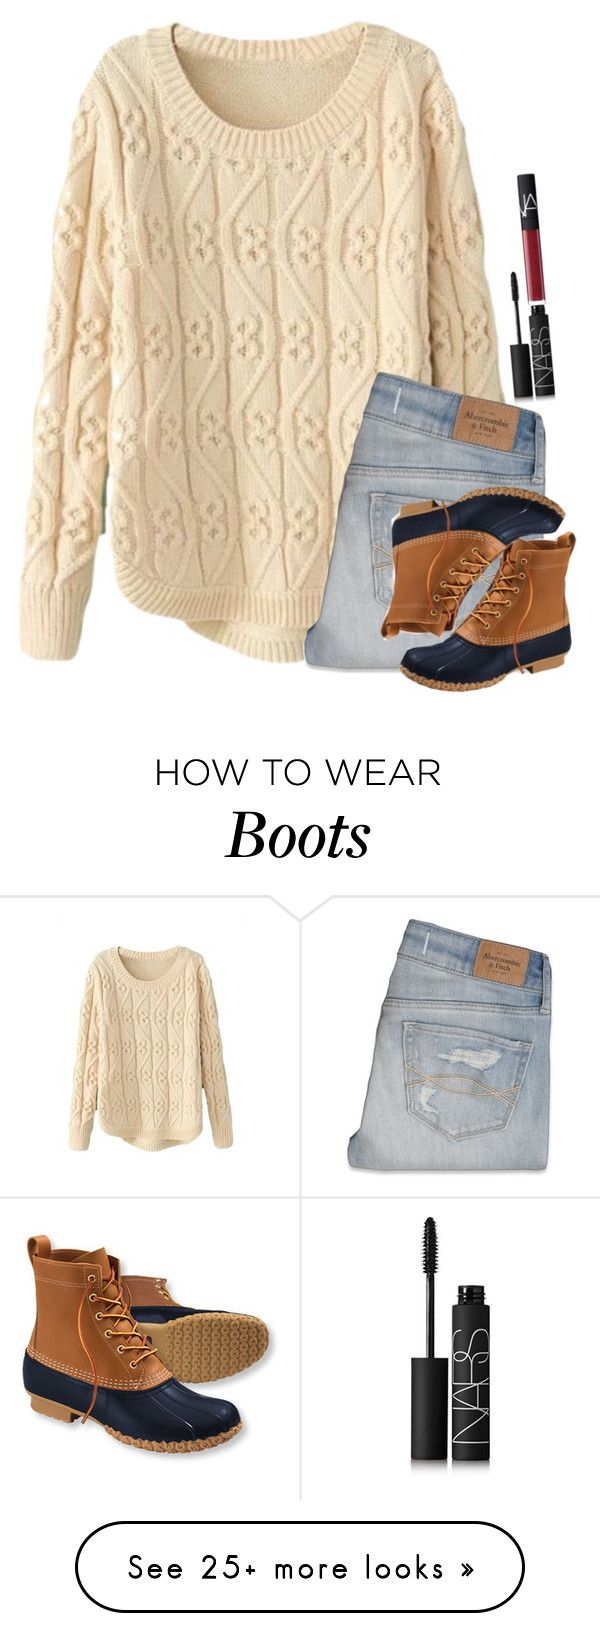 """""""Bean boots! ❤️"""" by meljordrum on Polyvore featuring Abercrombie & Fitch, L.L.Bean and NARS Cosmetics"""